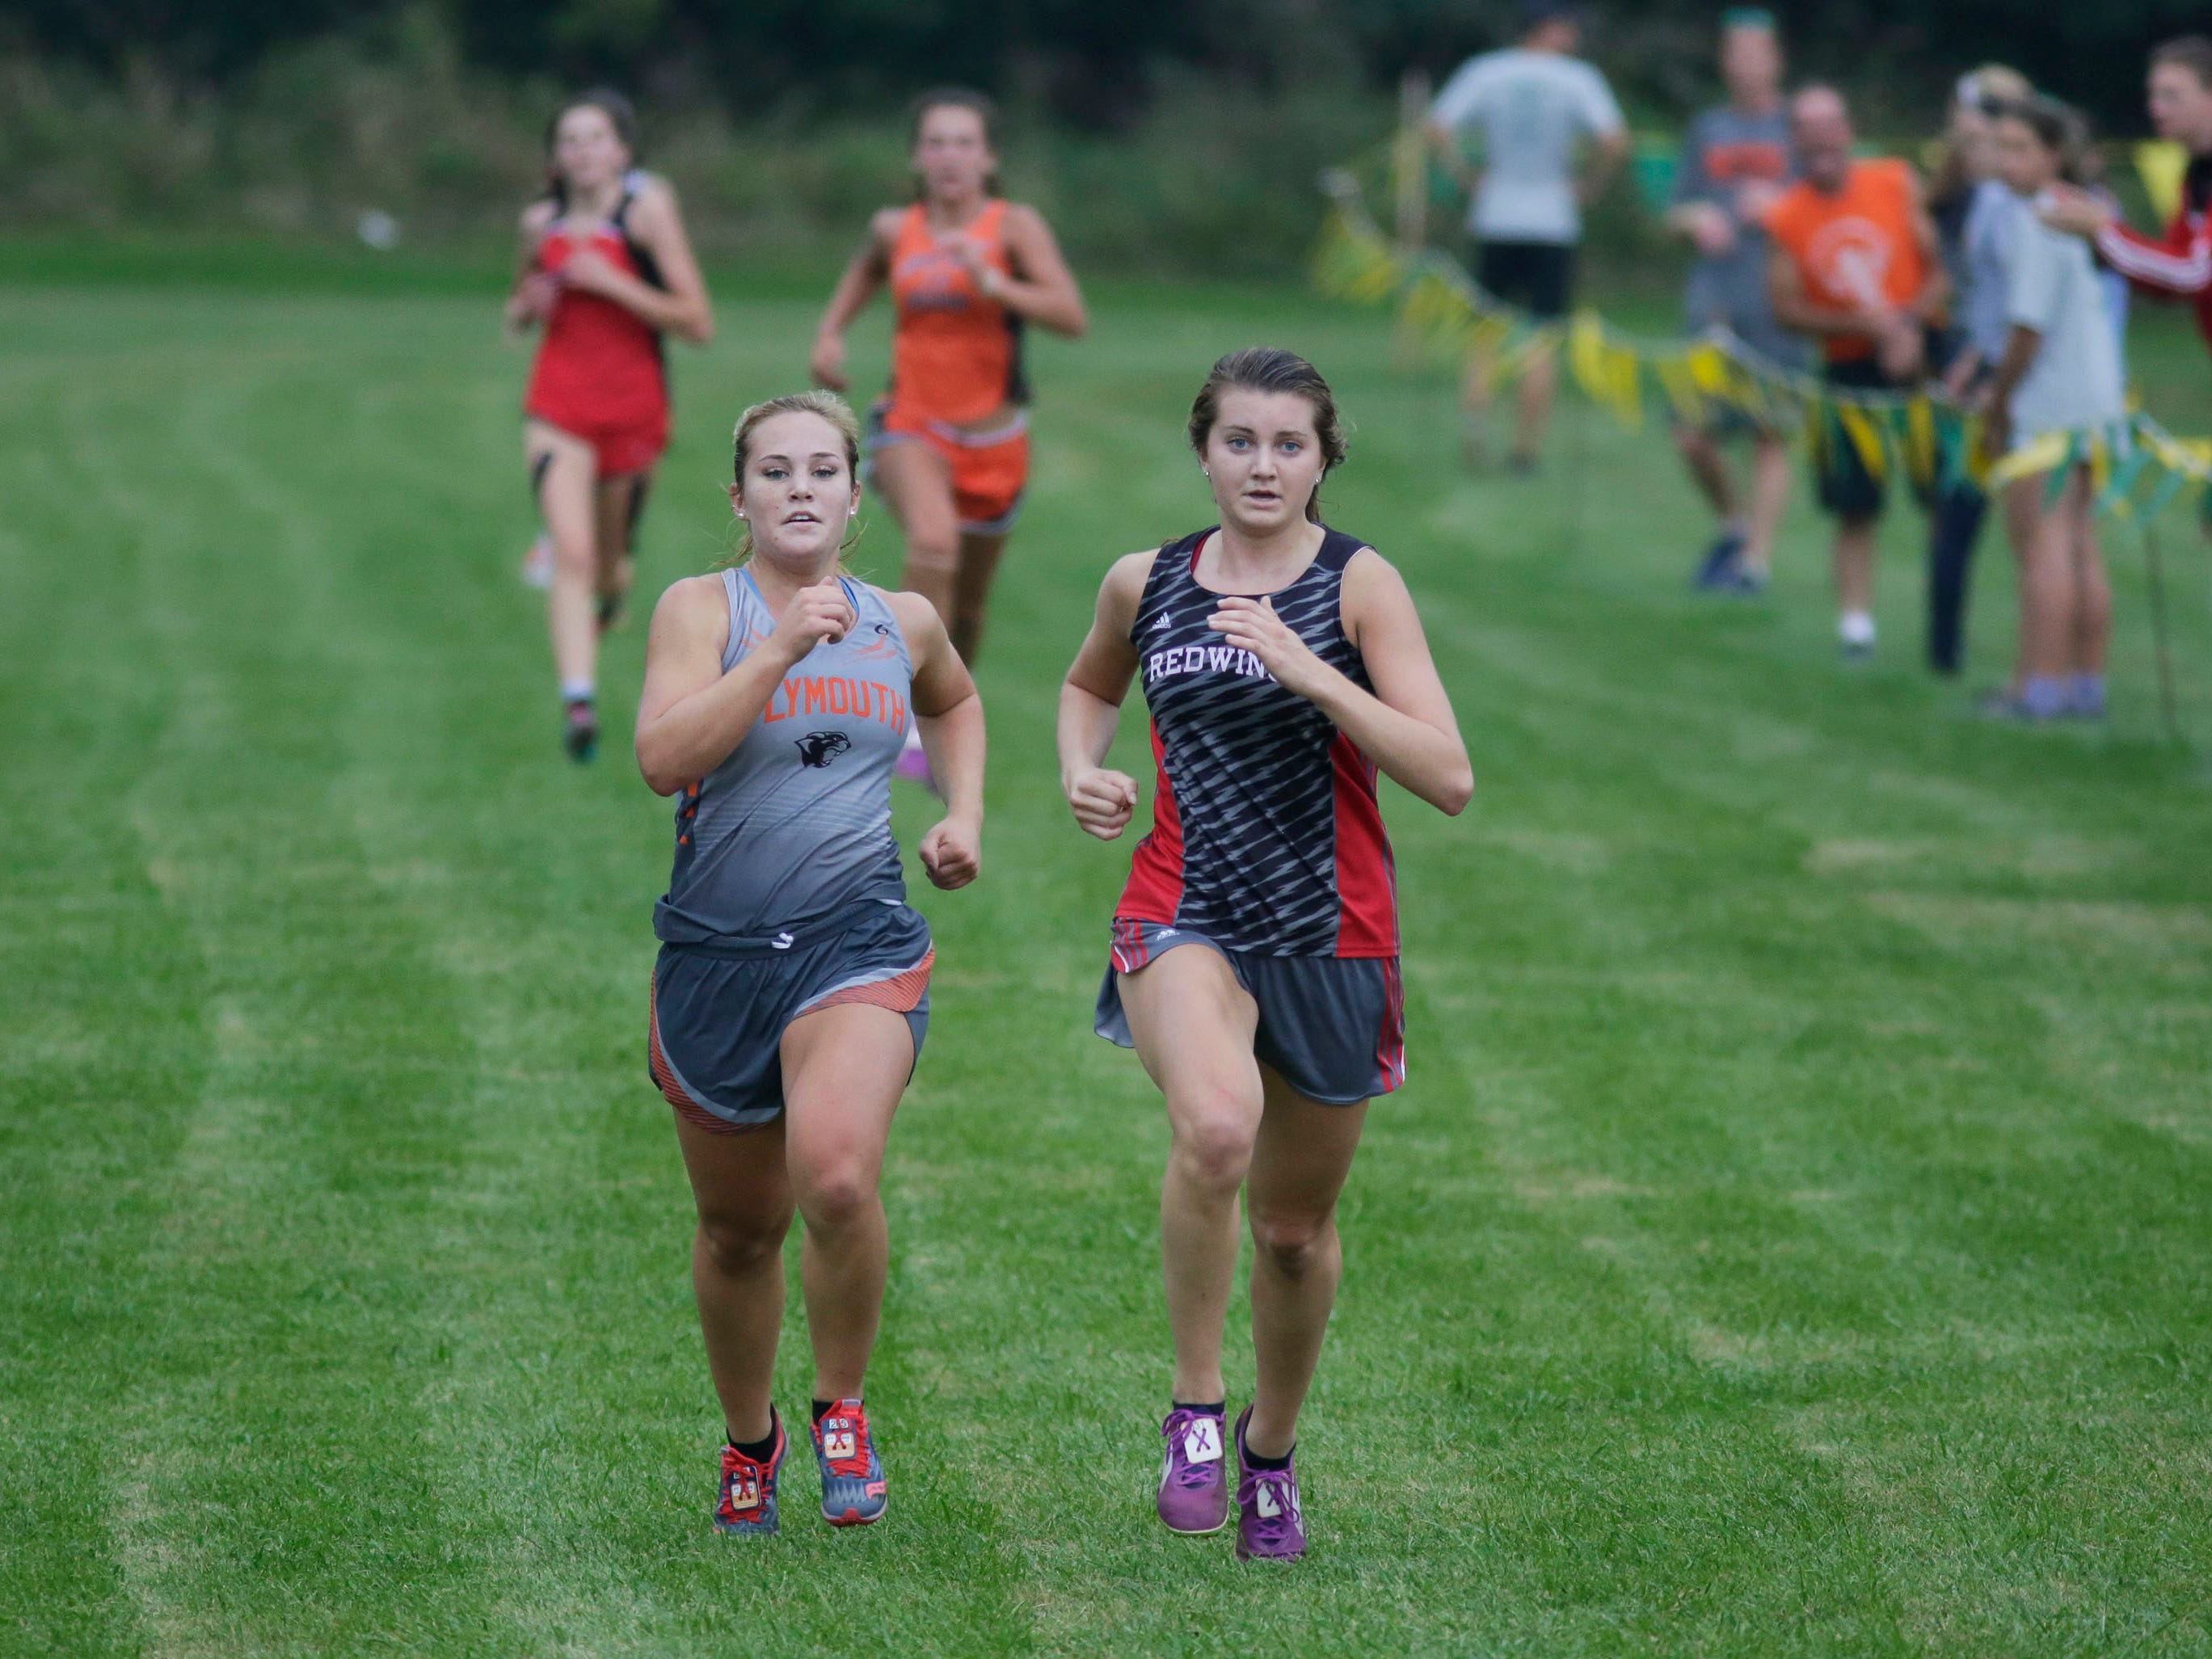 A scene from the Sheboygan Country Cross Country Invitational, Tuesday, September 25, 2018, in Sheboygan, Wis.